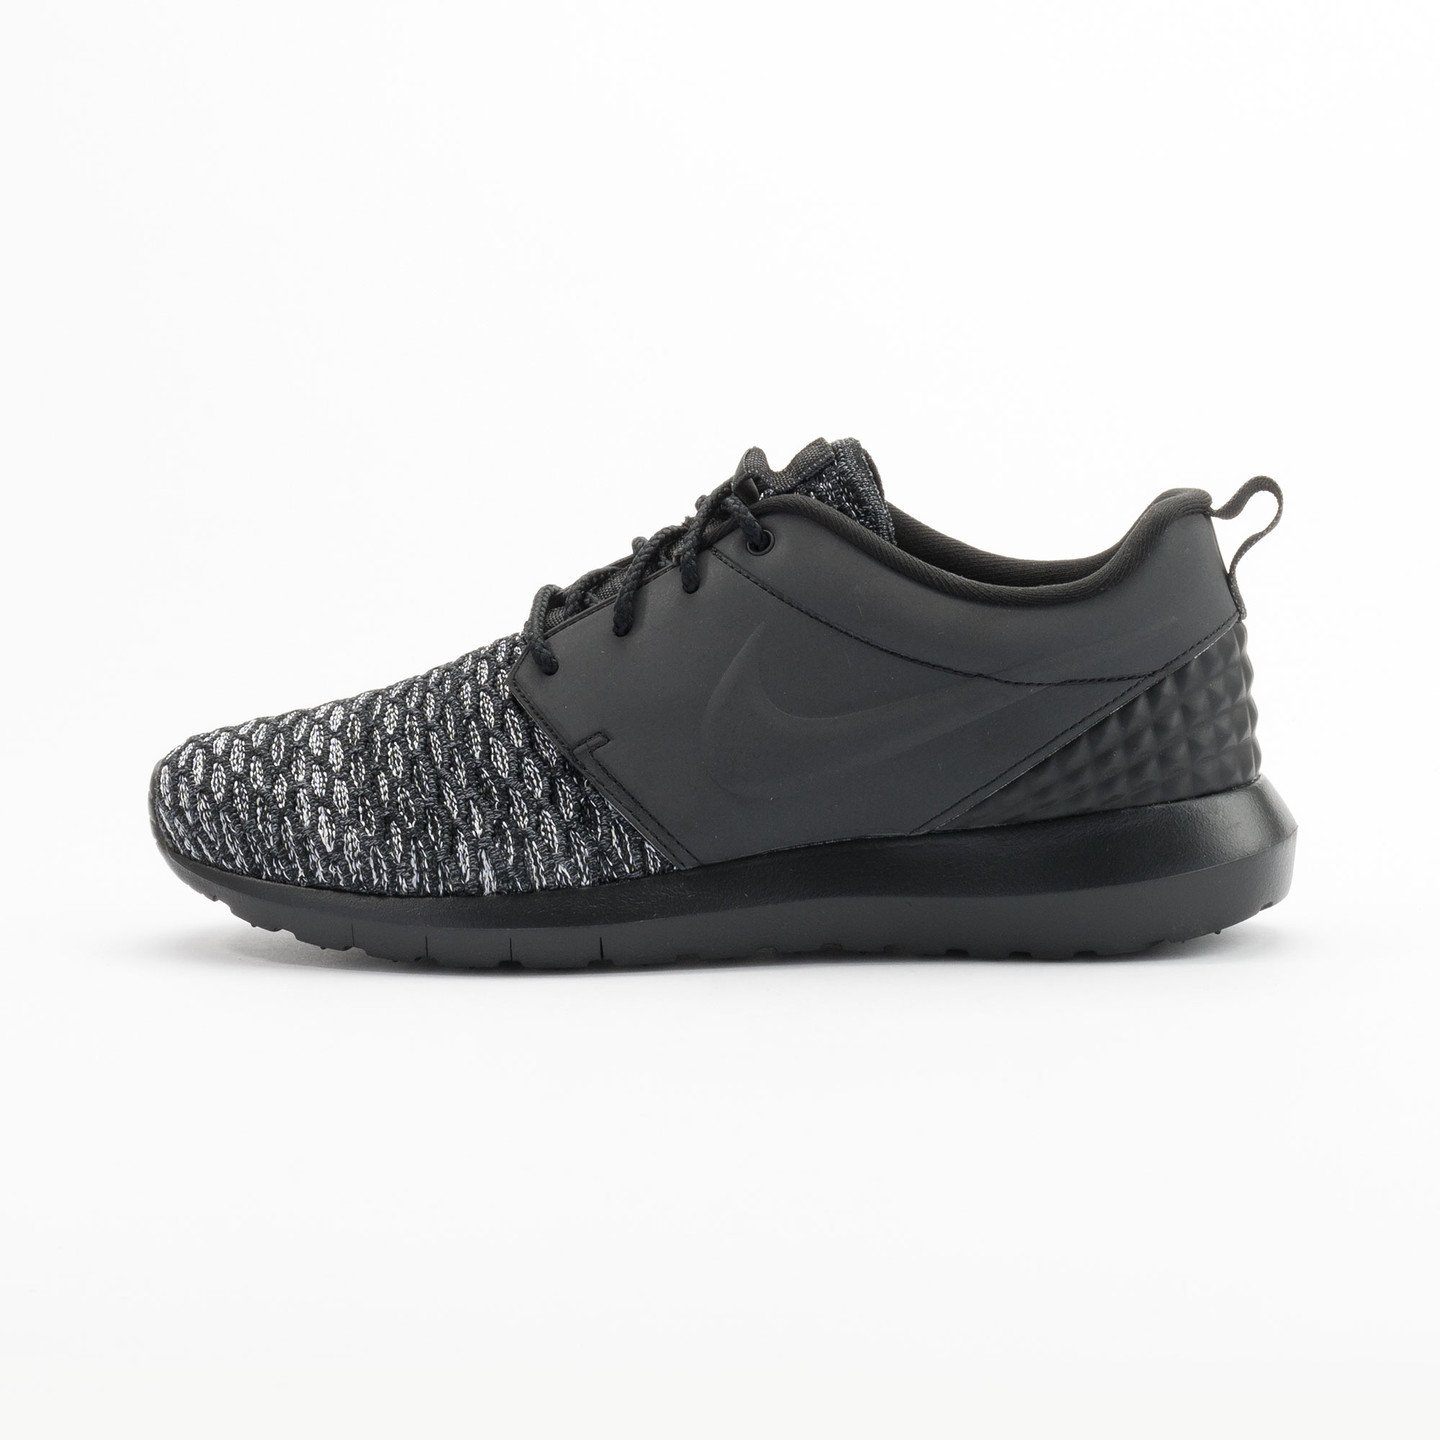 Nike Roshe NM Flyknit Premium Black / Black / Dark Grey / White 746825-002-45